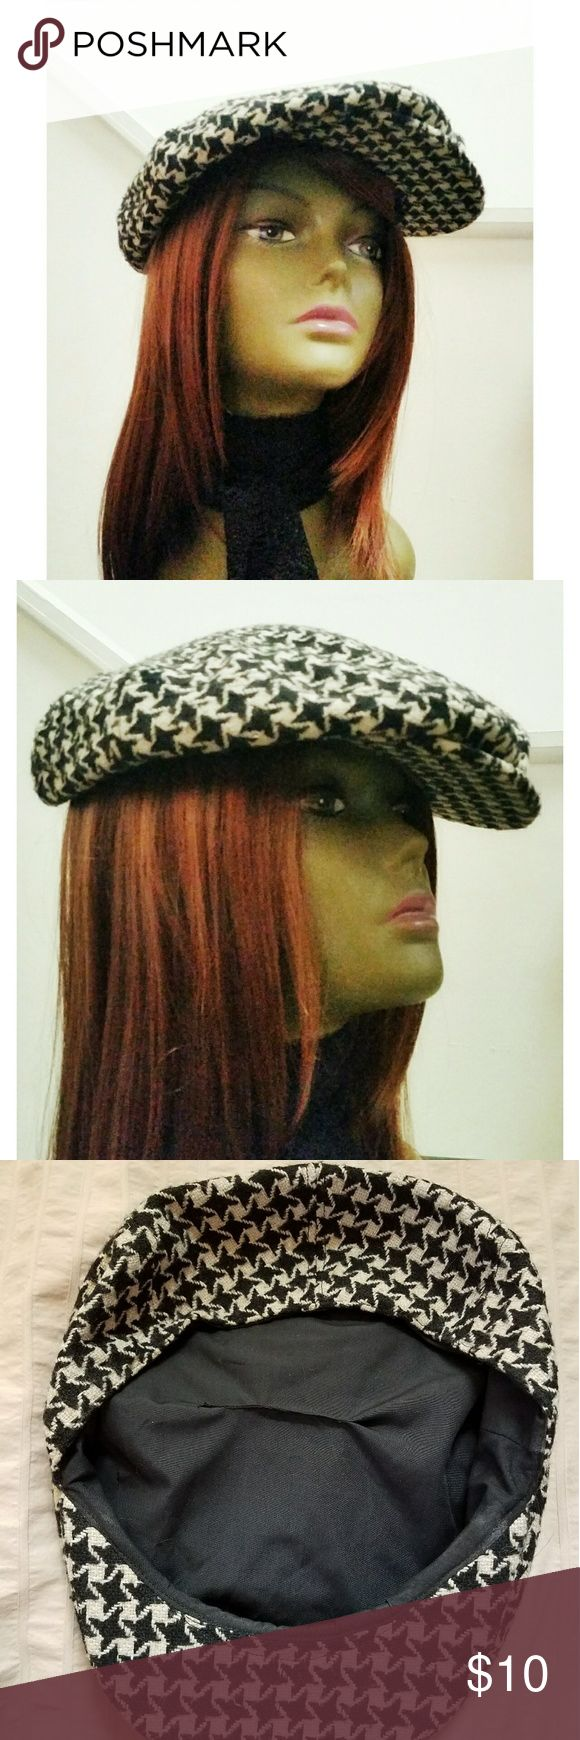 Vintage black and white cap. This black and white hounds tooth cap can be worm by male or female. Makes a great accessory for a stylish casual outfit.   There was a small tear in the lining, which i mended (photo # 3). Accessories Hats